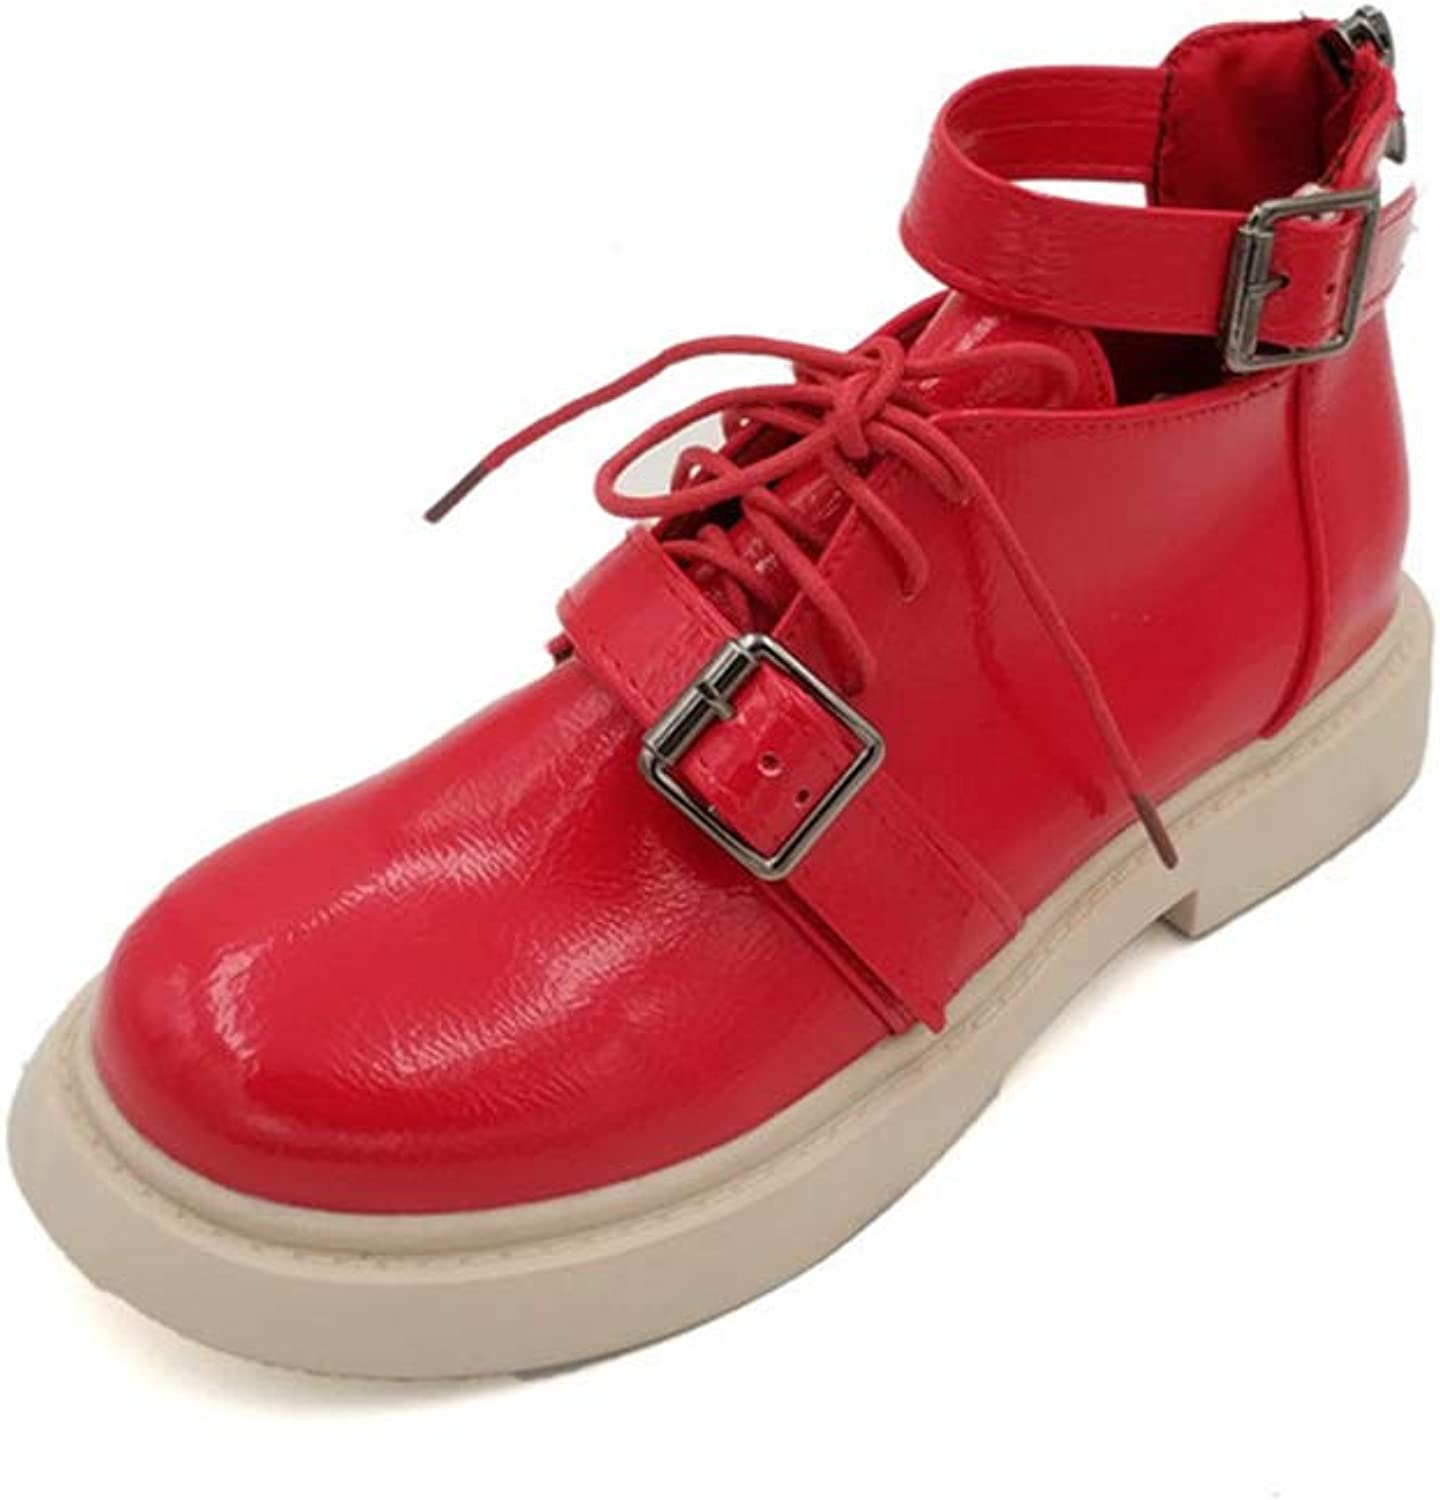 Hoxekle Ankle Boot British Style Red shoes Women Lace-up for Women Boots Leather Zipper Punk shoes